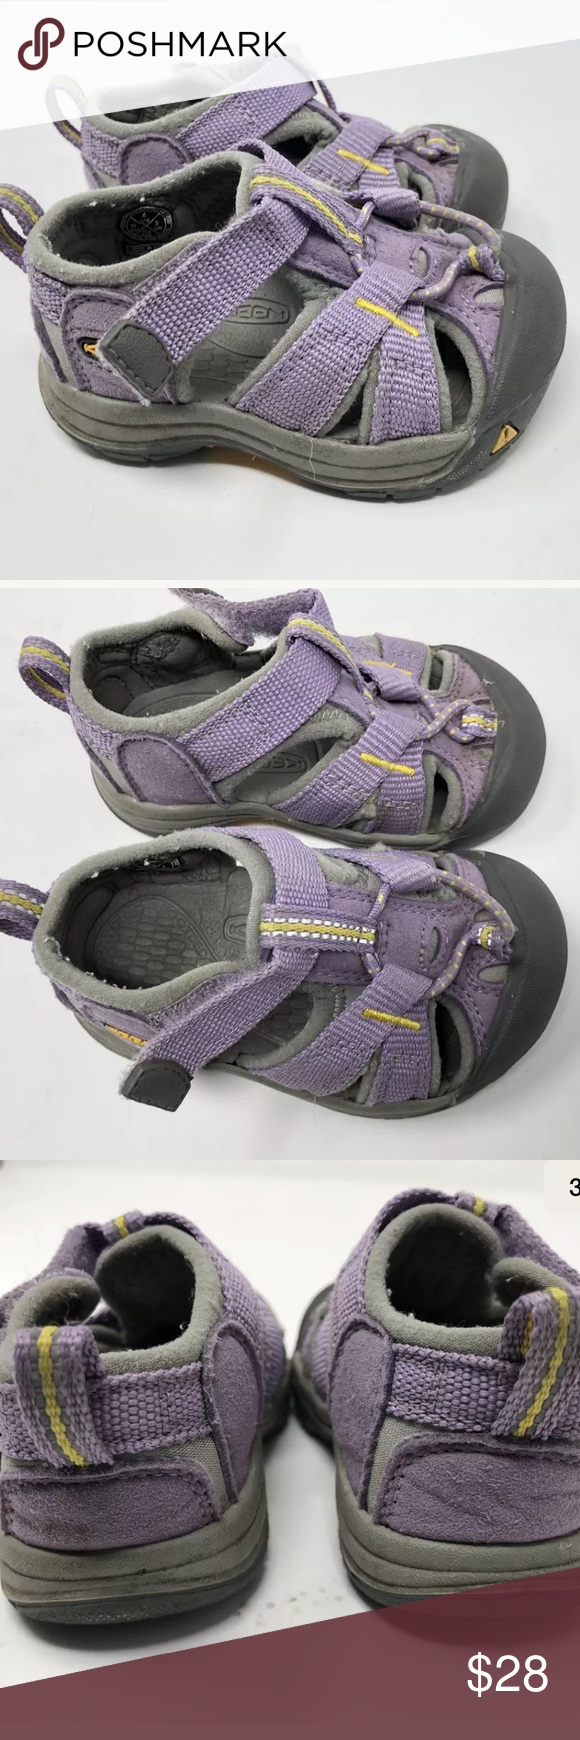 128c99e6e14 Keen Toddler Size 4 Venice H2 Waterproof Sandals Keen Toddler Size 4 Venice  H2 Waterproof Sandal Shoes Bougainvillea Purple gently used Keen Shoes  Sandals ...